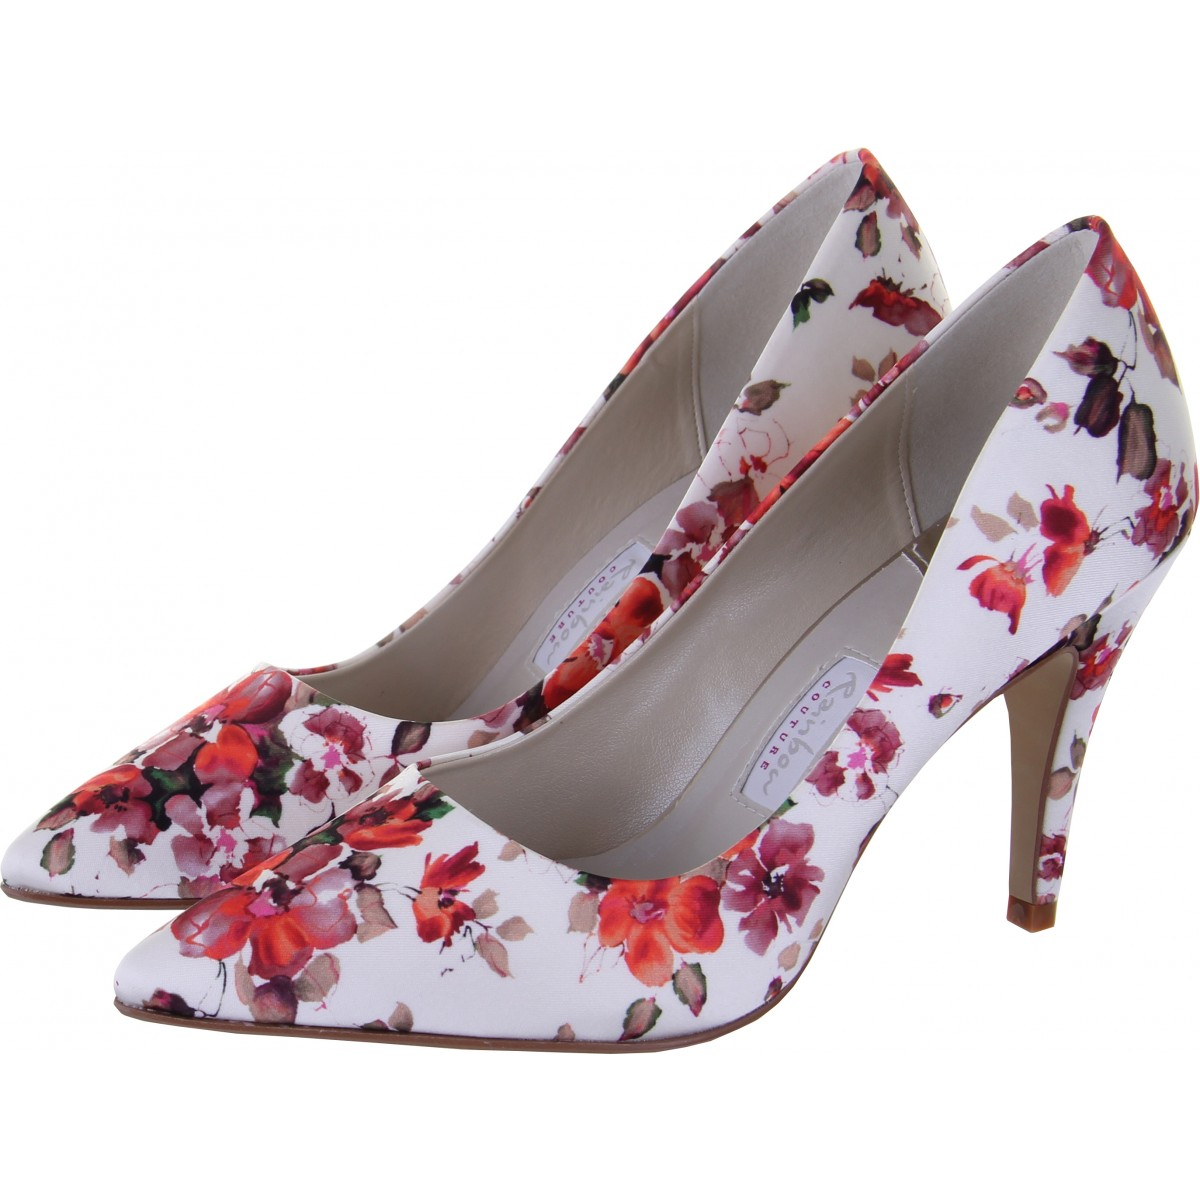 How To Choose Wedding Shoes